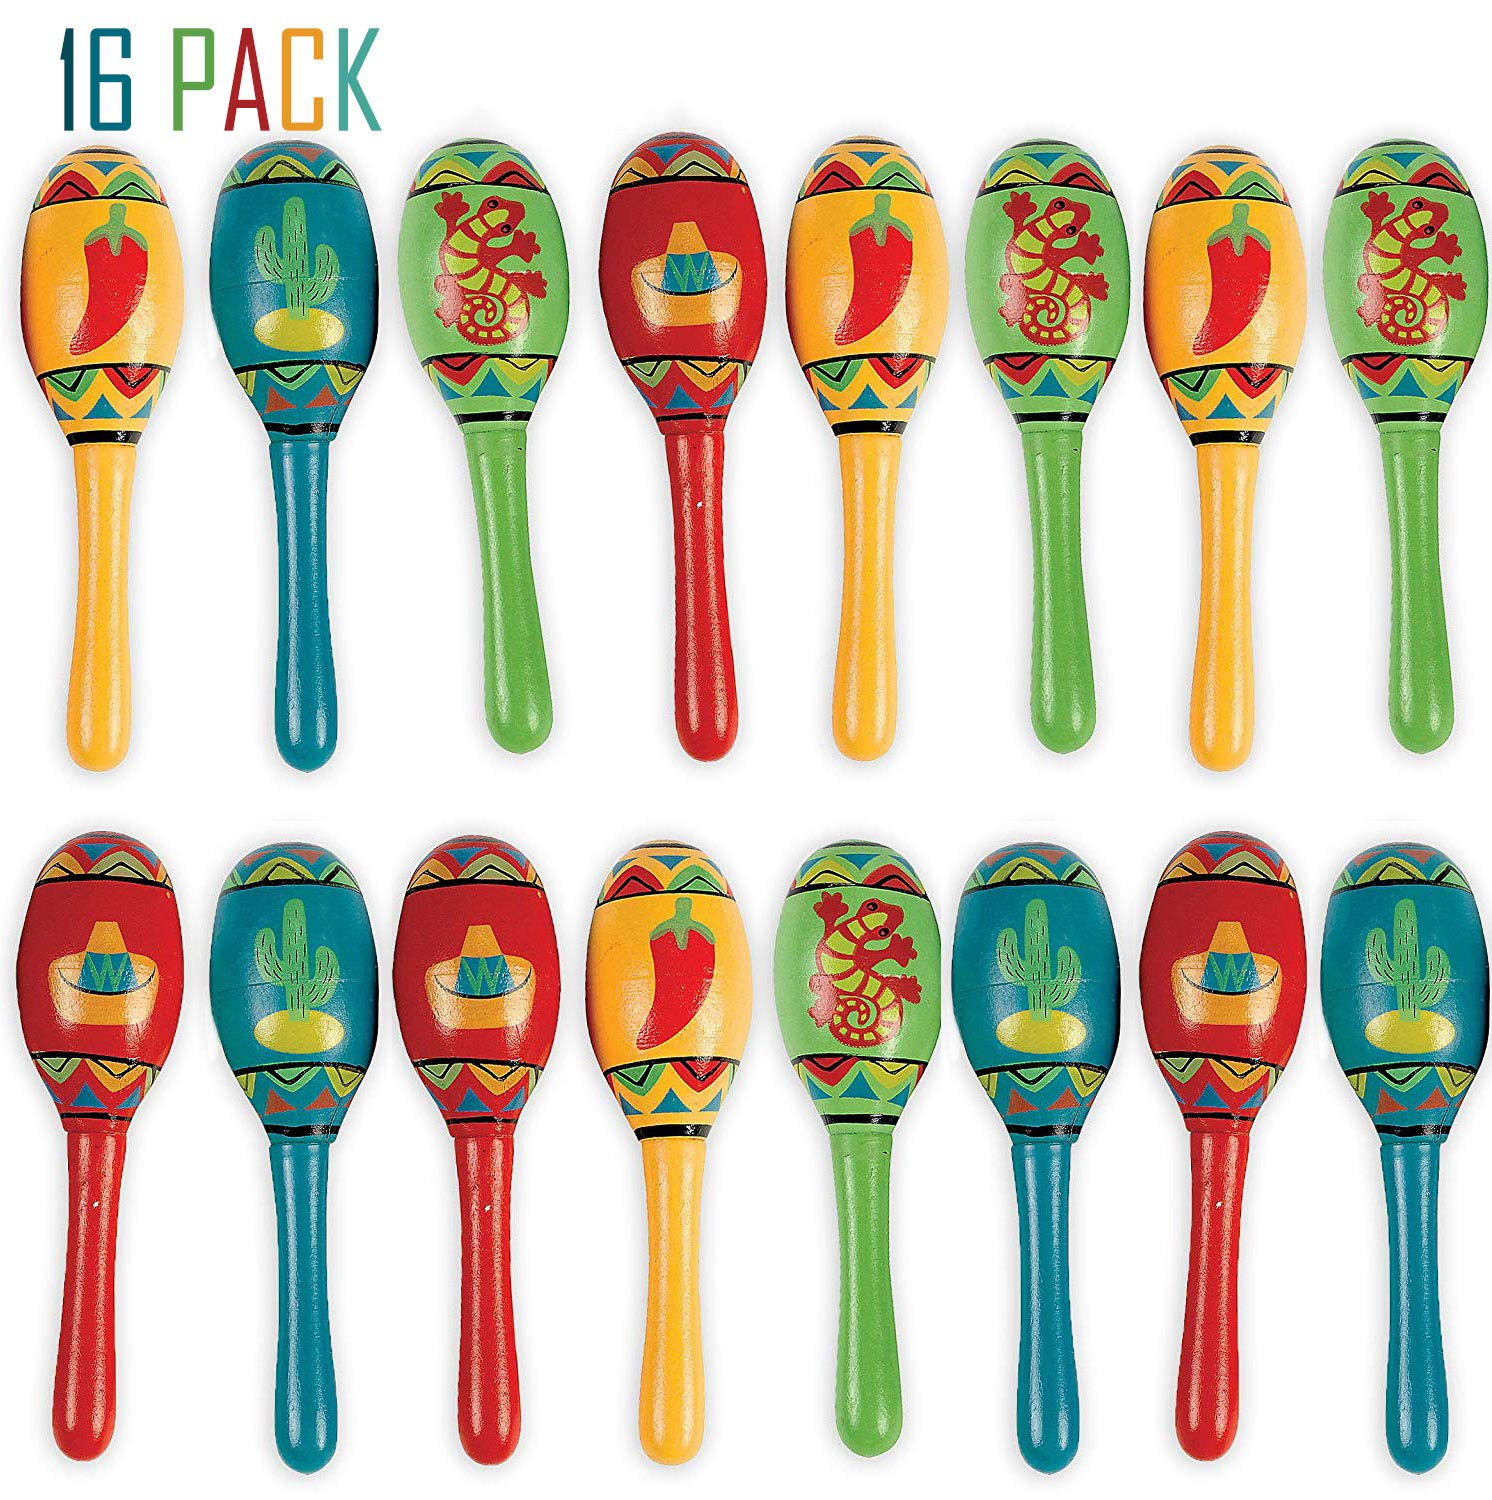 Bulk 16 Mini Wooden Maracas Mexican Fiesta Cinco de Mayo Party Favor, Great for Decorations, Noisemaker Toys, 4 Different Styles, Bright Colors, 5 Inches, For Kids, Boys, Girls, By 4E's Novelty by 4E's Novelty